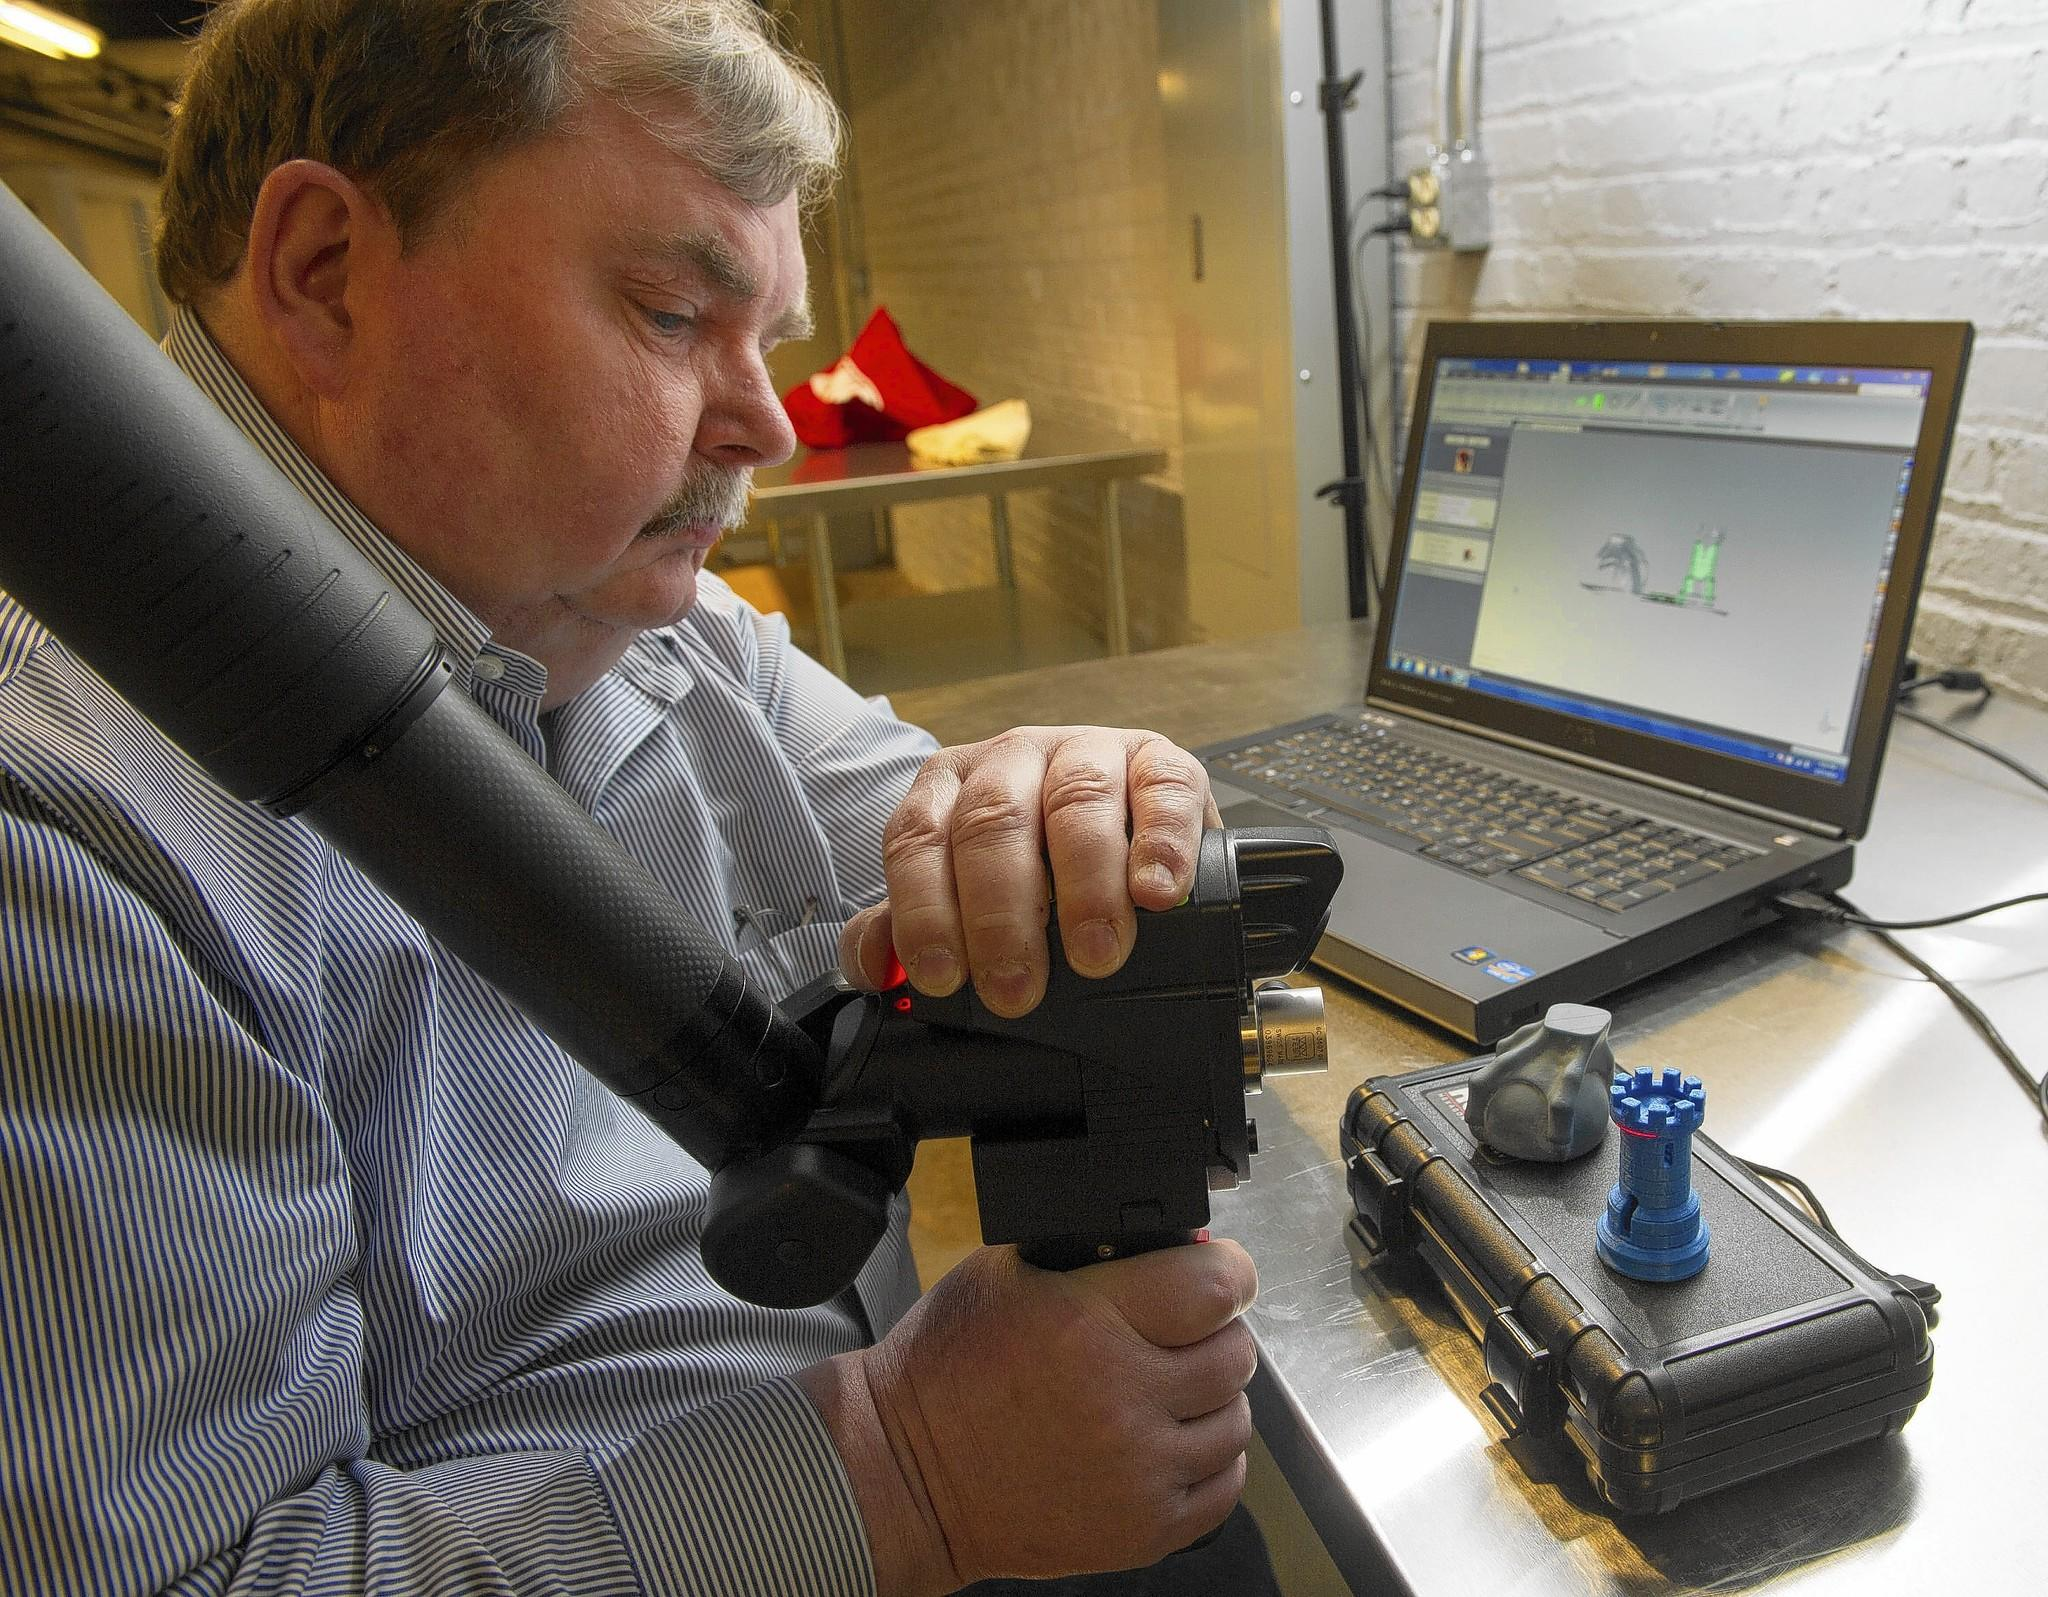 Kevin Collier demonstrates how a 3-D scanner is used to scan a chess piece, so it can be duplicated by a 3-D printer at America Makes, the 3-D innovation lab in Youngstown, Ohio. It was the first manufacturing lab set up by President Barack Obama and focuses exclusively on 3-D printing.